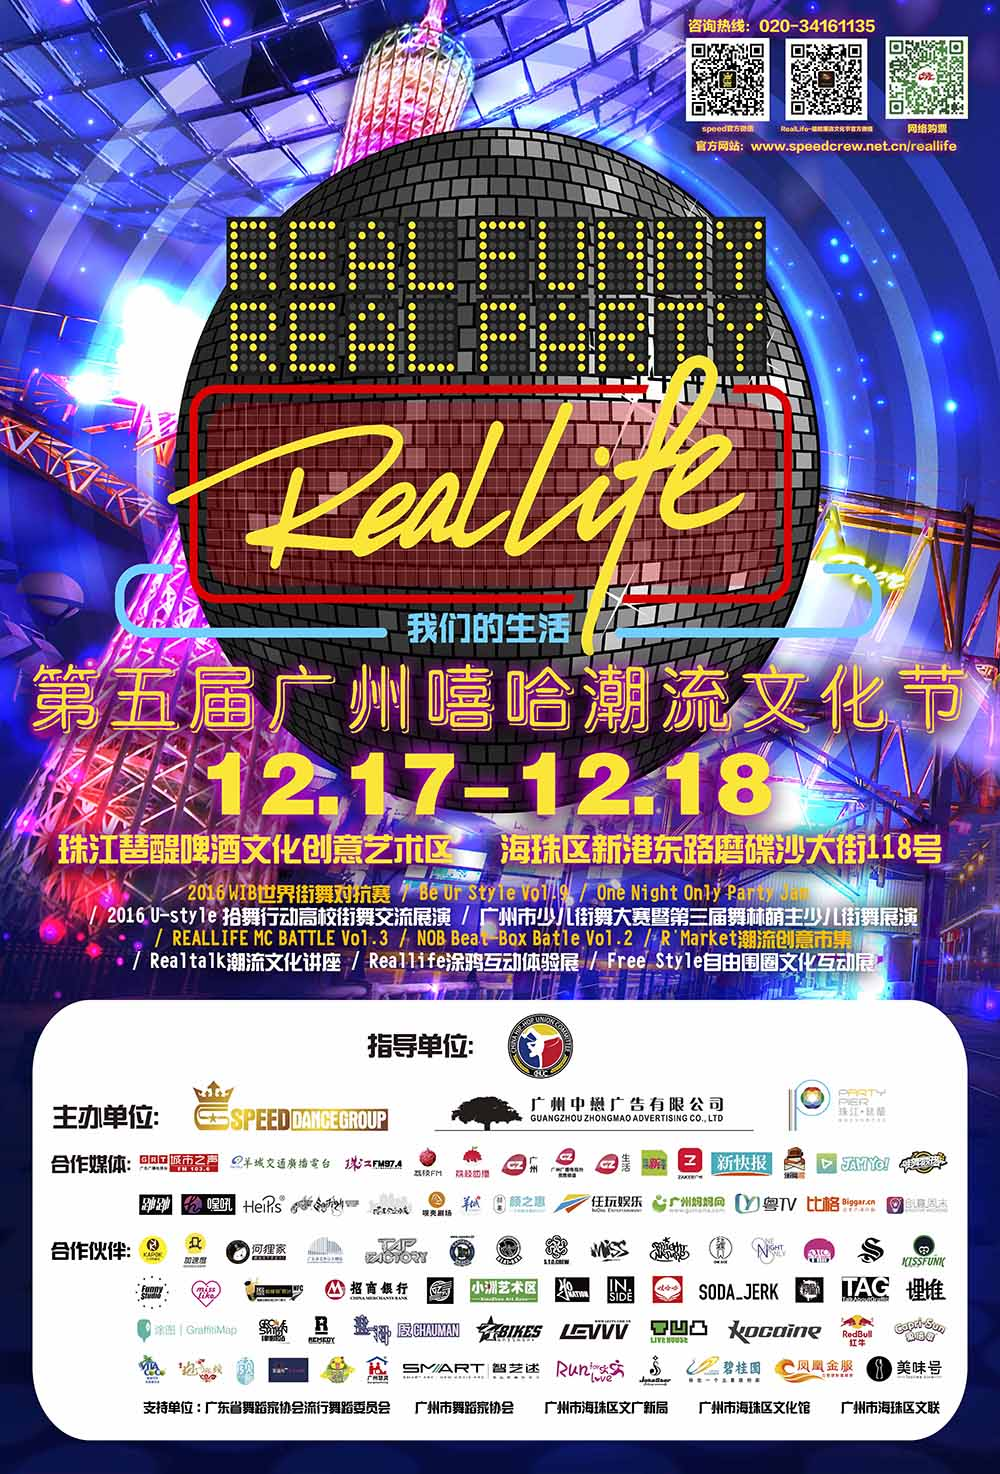 【Reallife新玩法】MCBattleParty×BeatboxBattle×FreestyleCircle